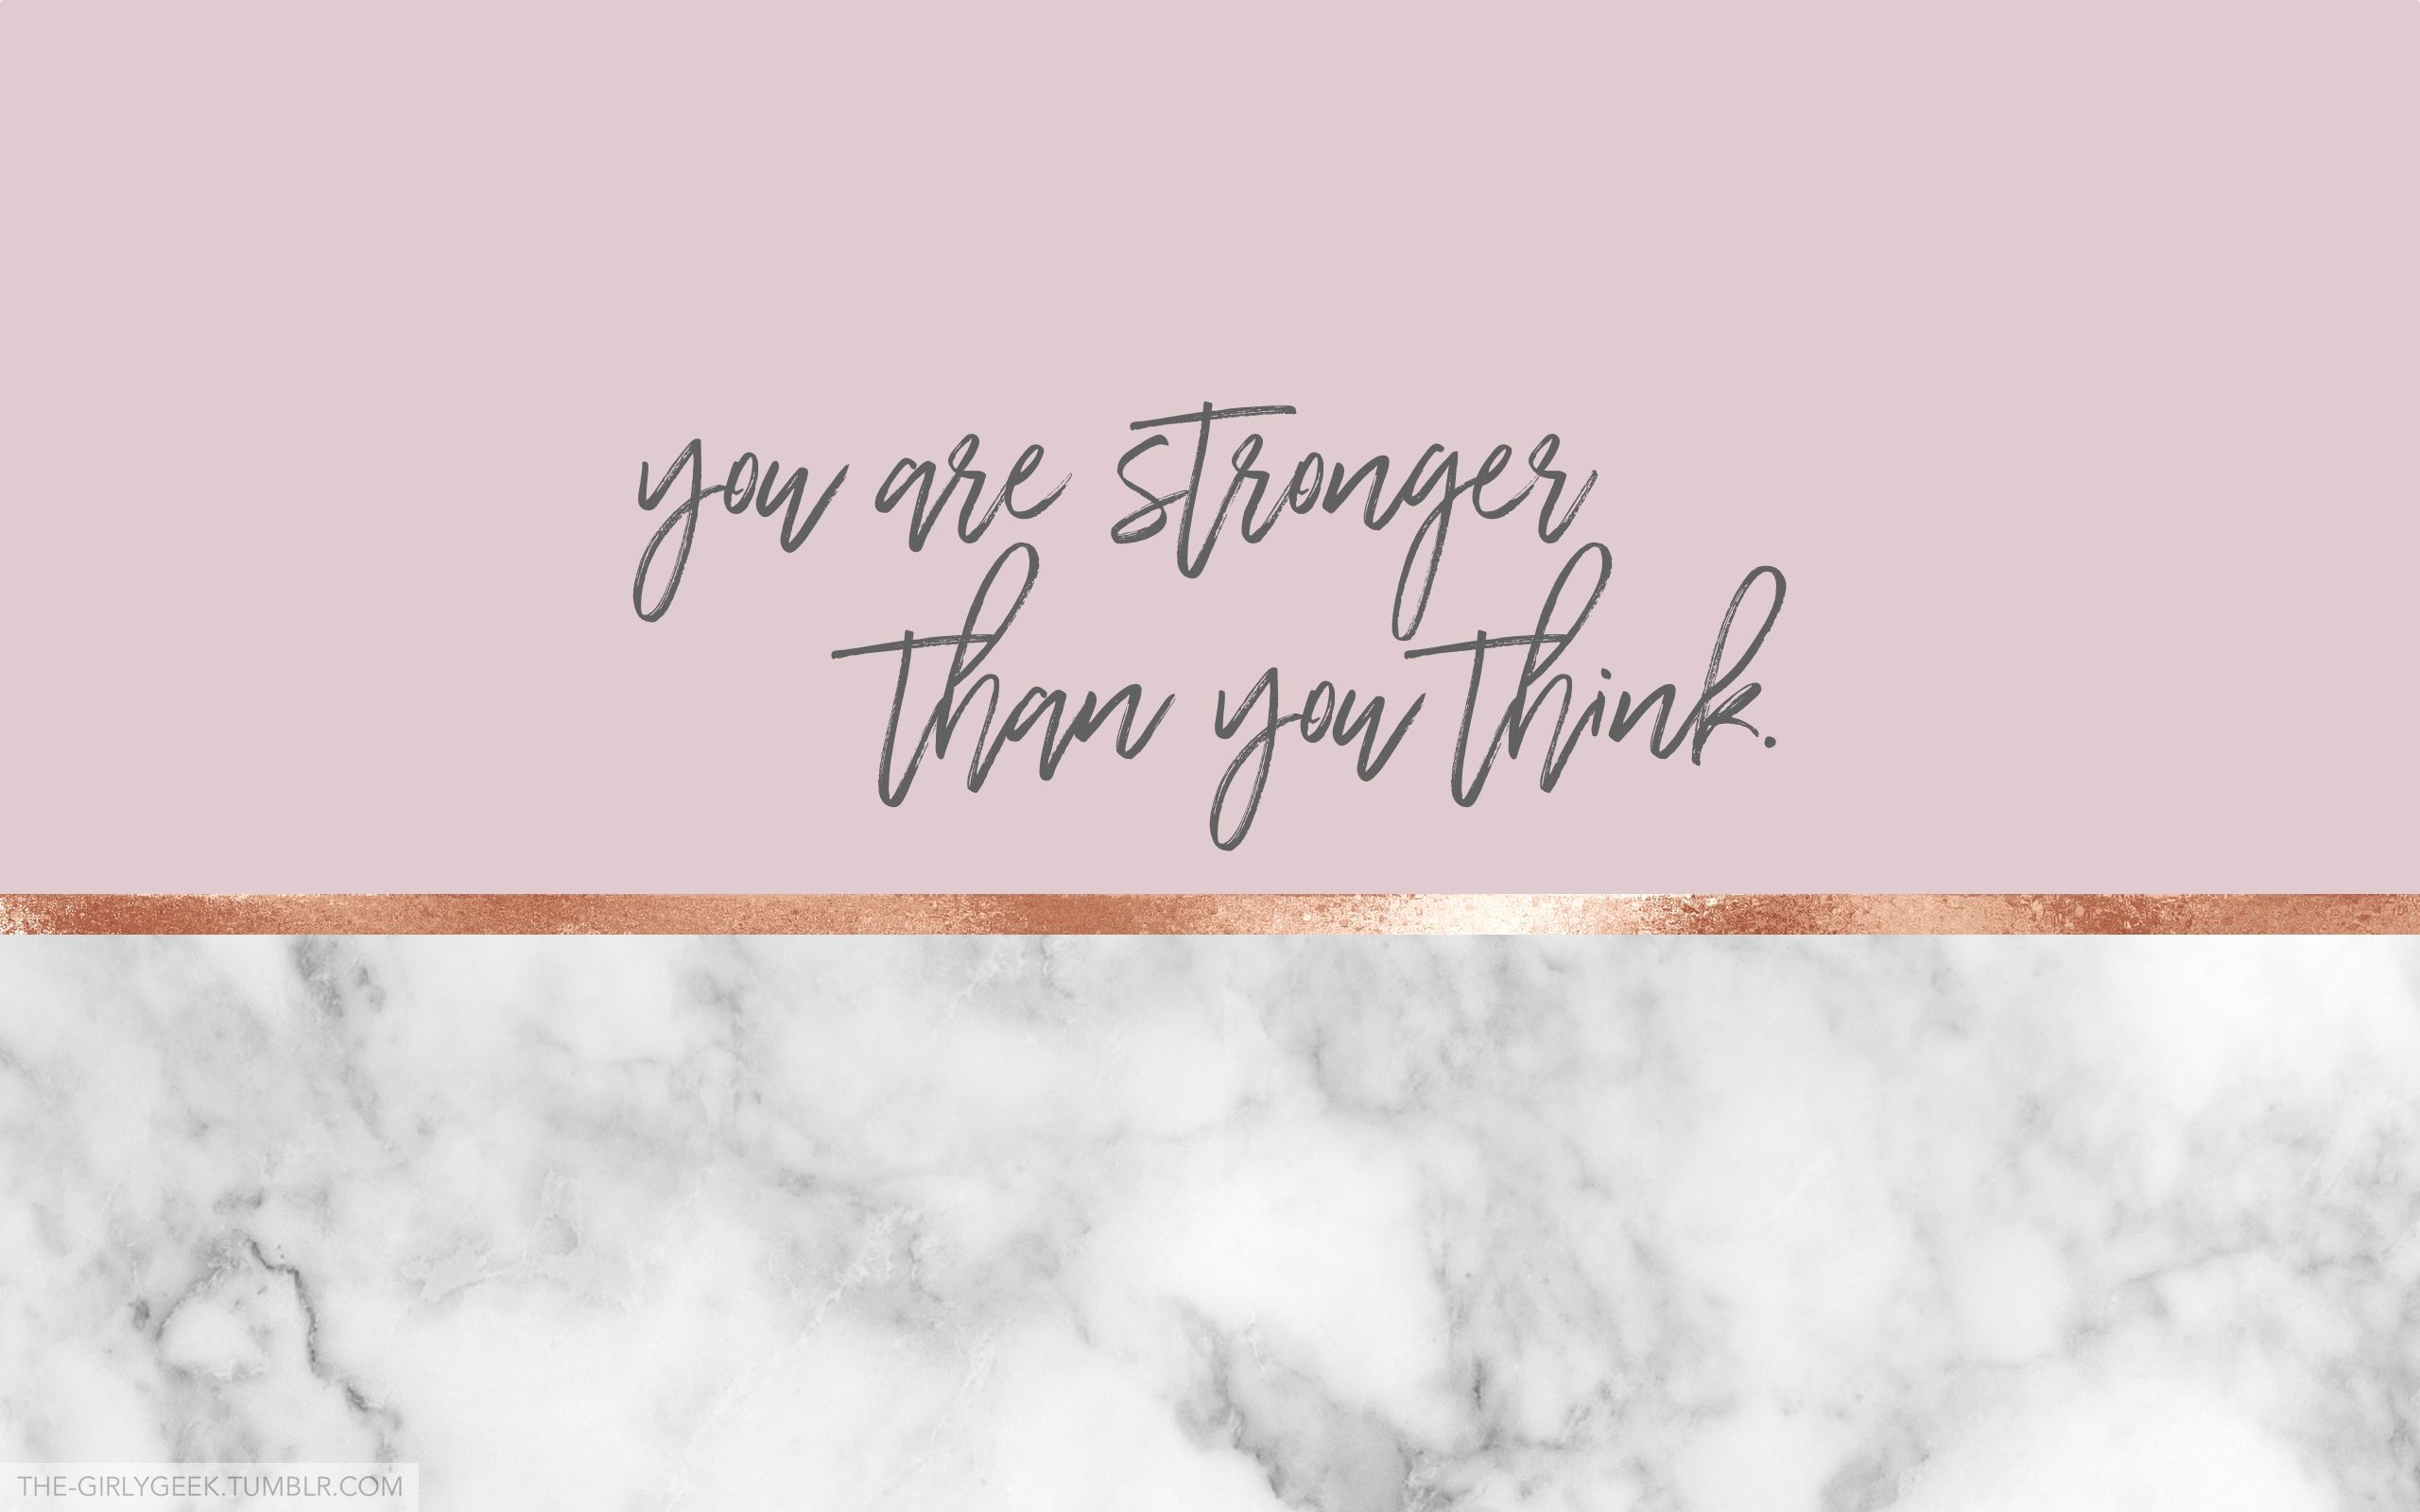 You Are Stronger Than You Think Laptop Wallpaper Desktop Wallpapers Computer Wallpaper Desktop Wallpapers Laptop Wallpaper